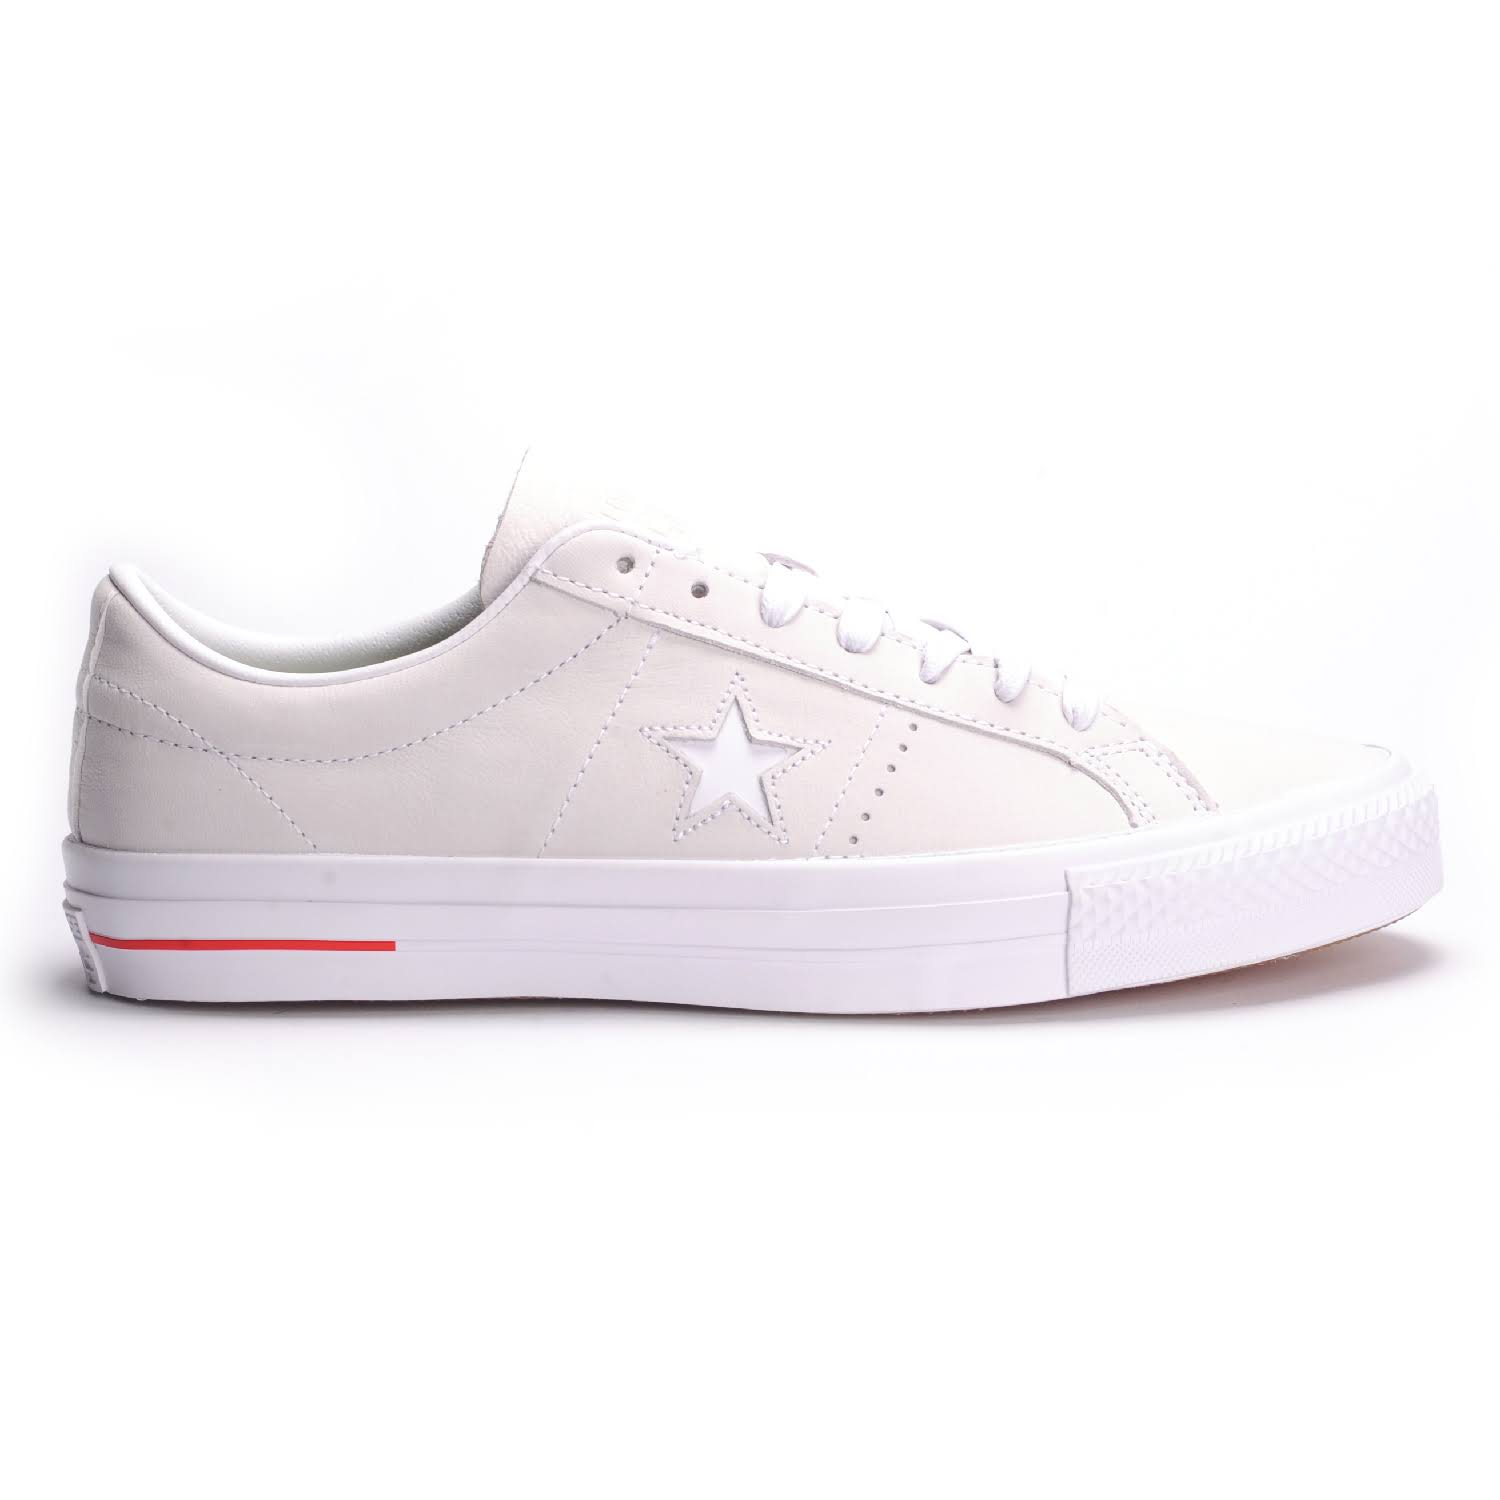 Size red 12 Ox Shoe Skate Unisex Star Pro bl White One Converse Uw8v0HqBW